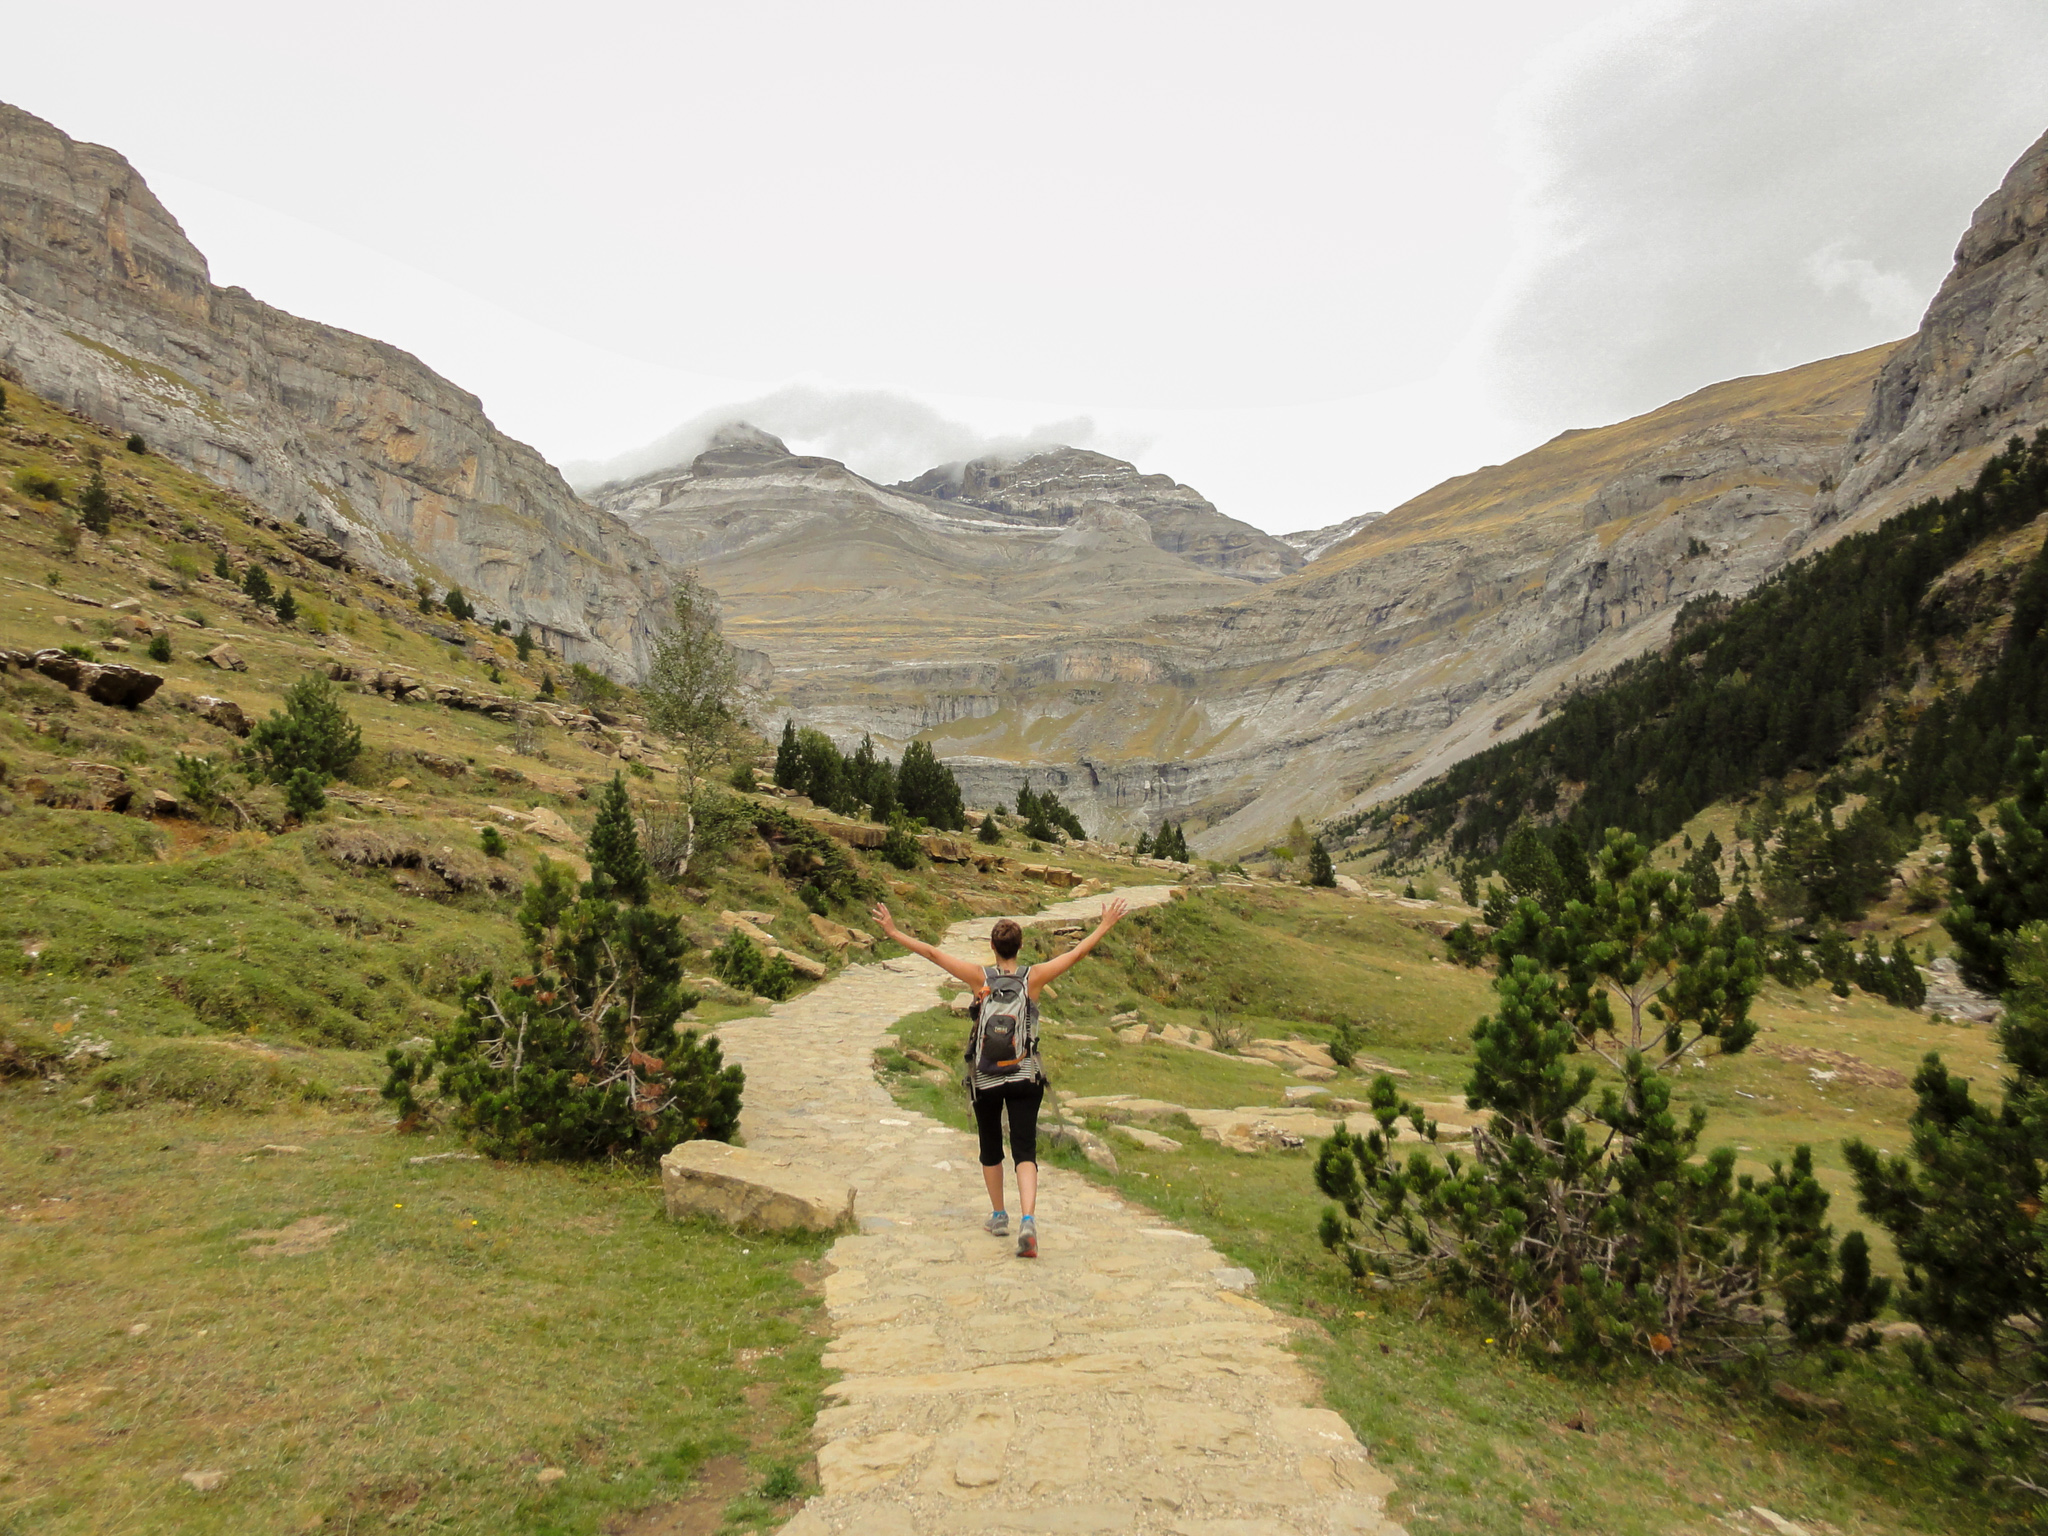 Karly hiking in Northern Spain